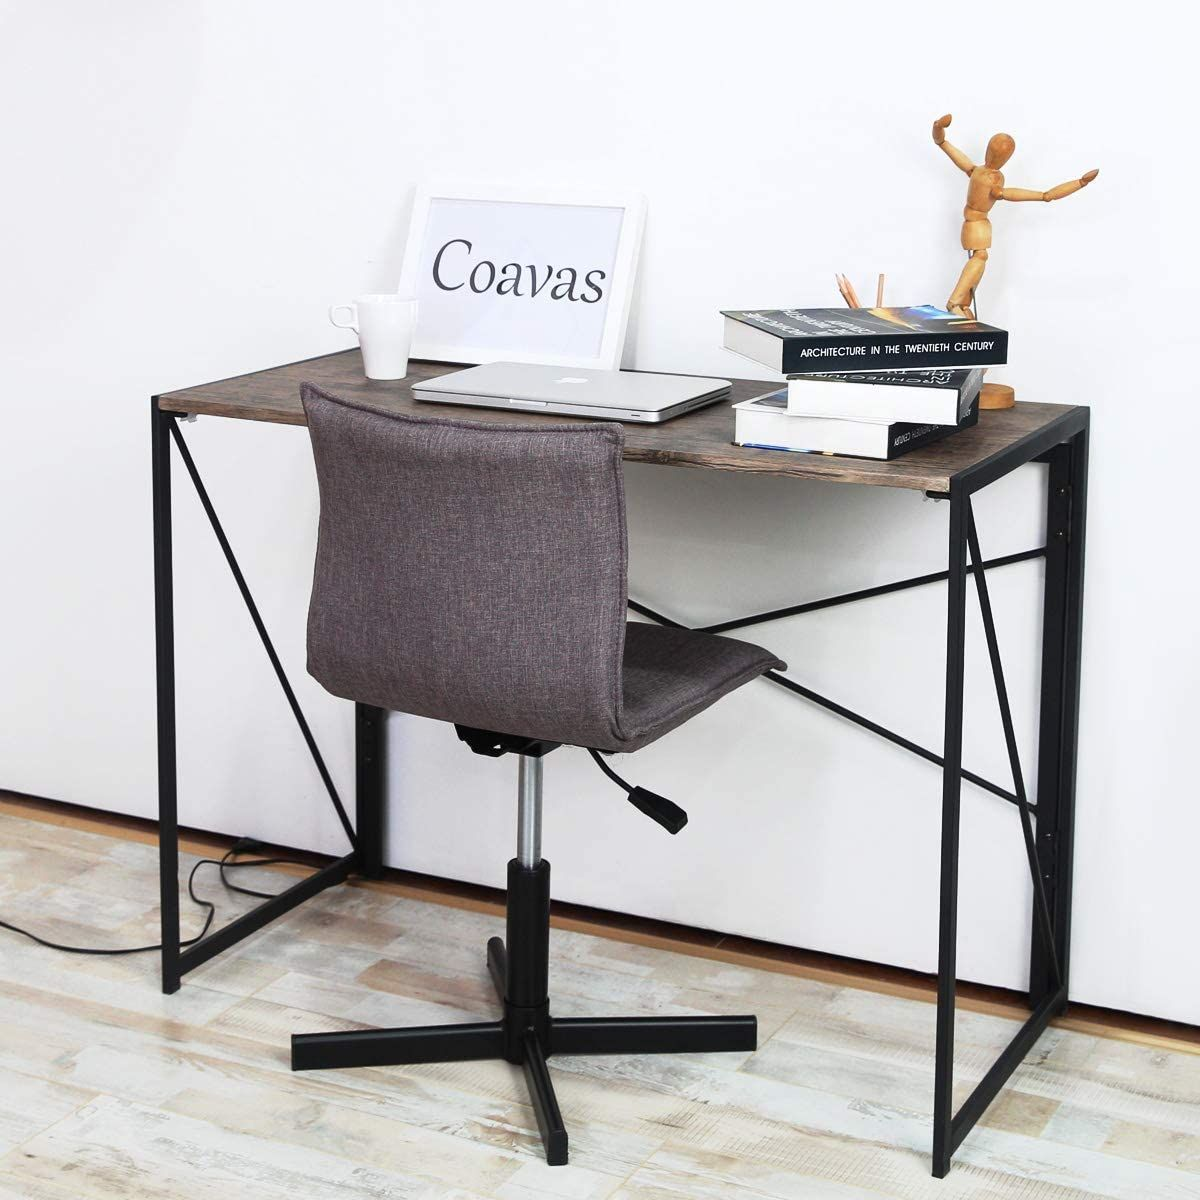 Folding Desk No Assembly Required Brown In 2021 Furniture Kitchen Furniture Storage Industrial Style Desk